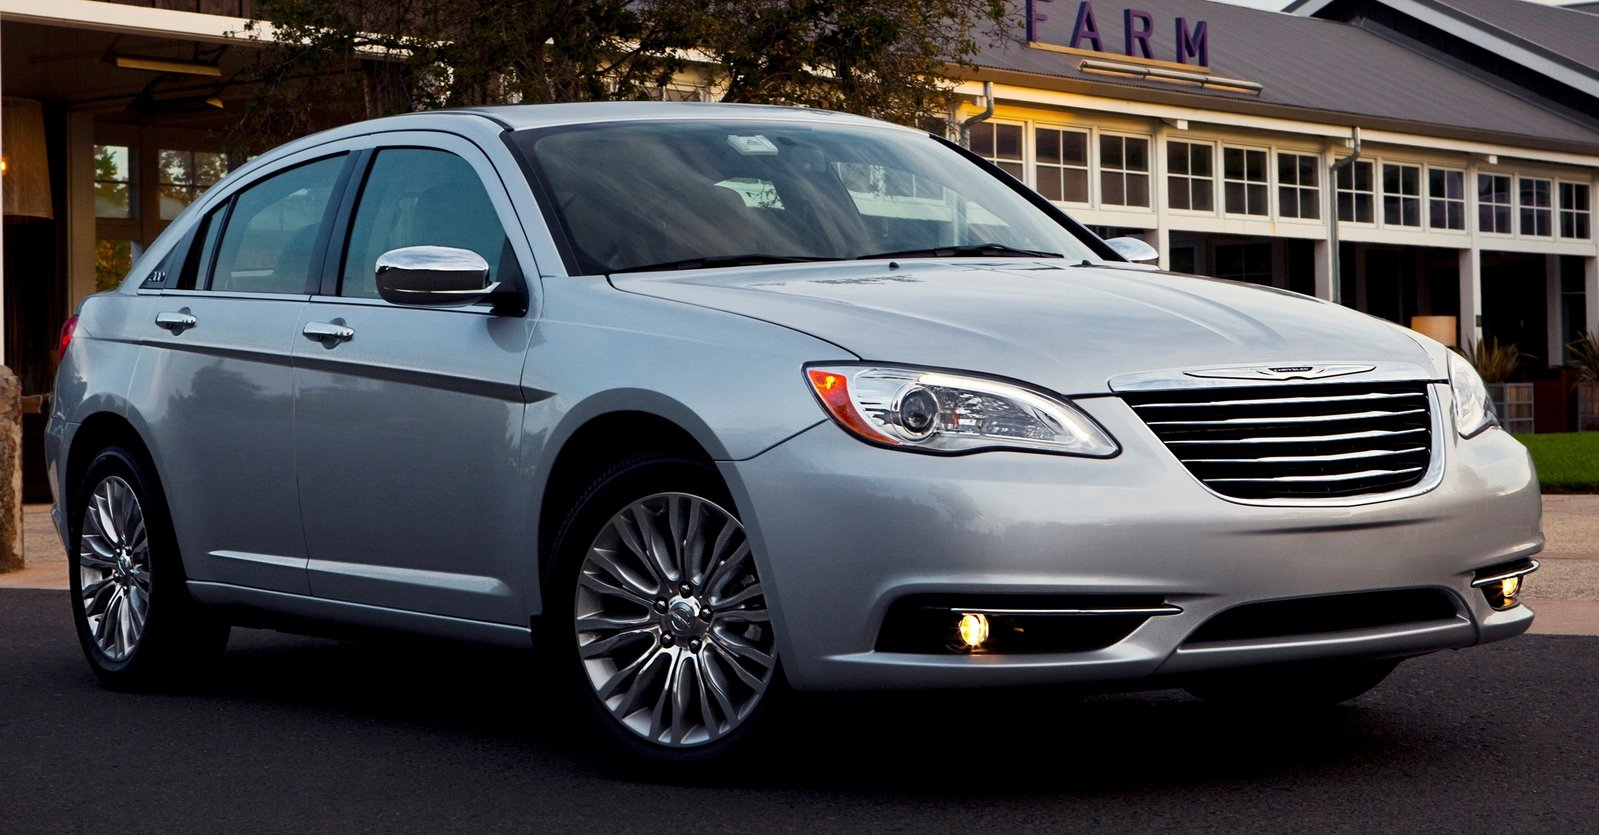 2013 chrysler 200 picture 516603 car review top speed. Cars Review. Best American Auto & Cars Review